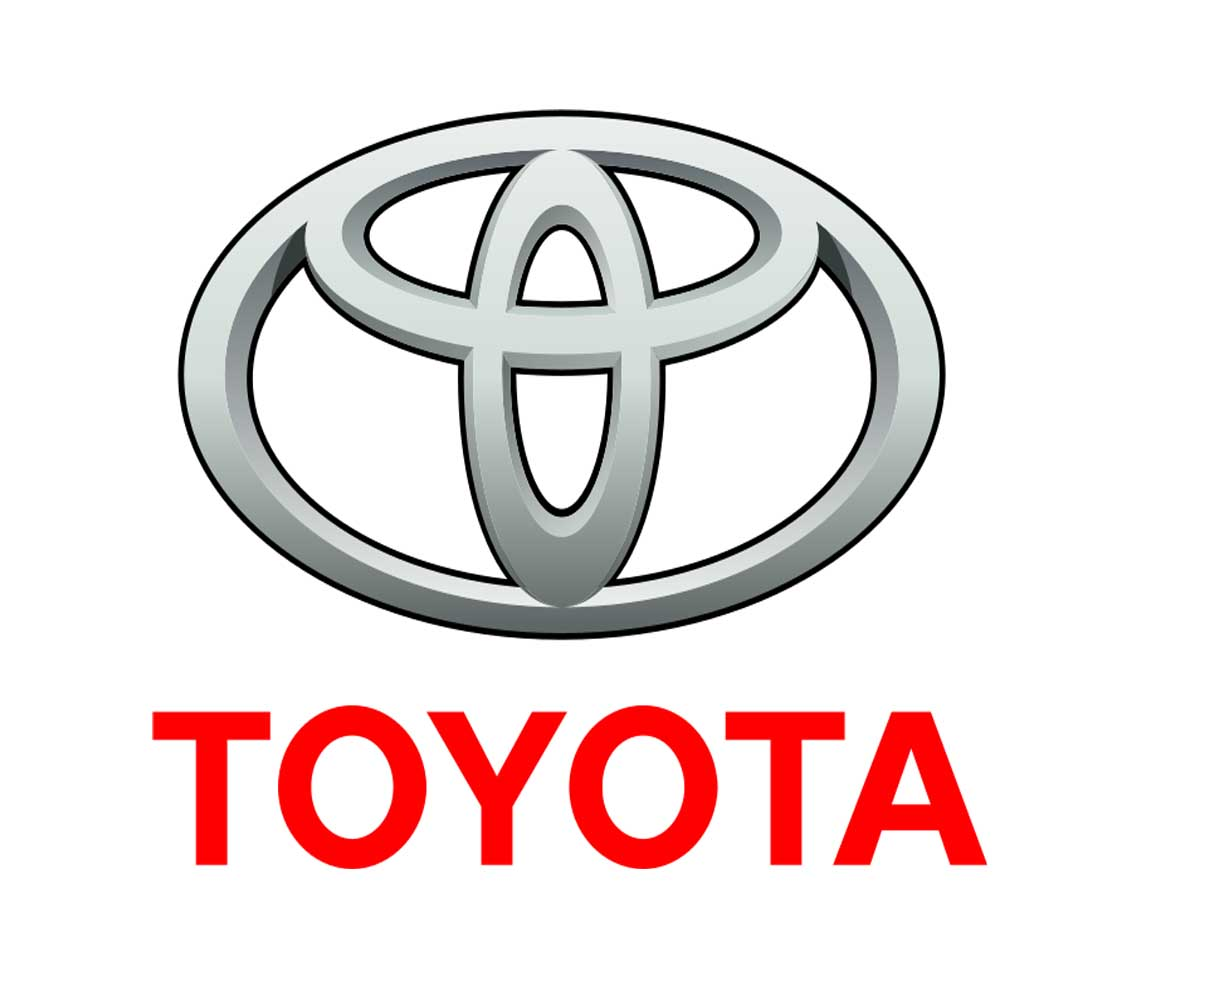 Toyota, Rckruf, Avensis, Corolla, Prius, Wasserpumpe, Lenkung, Lenkgestnge, KBA, Mangel, Fehler, Qualitt, Werkstatt